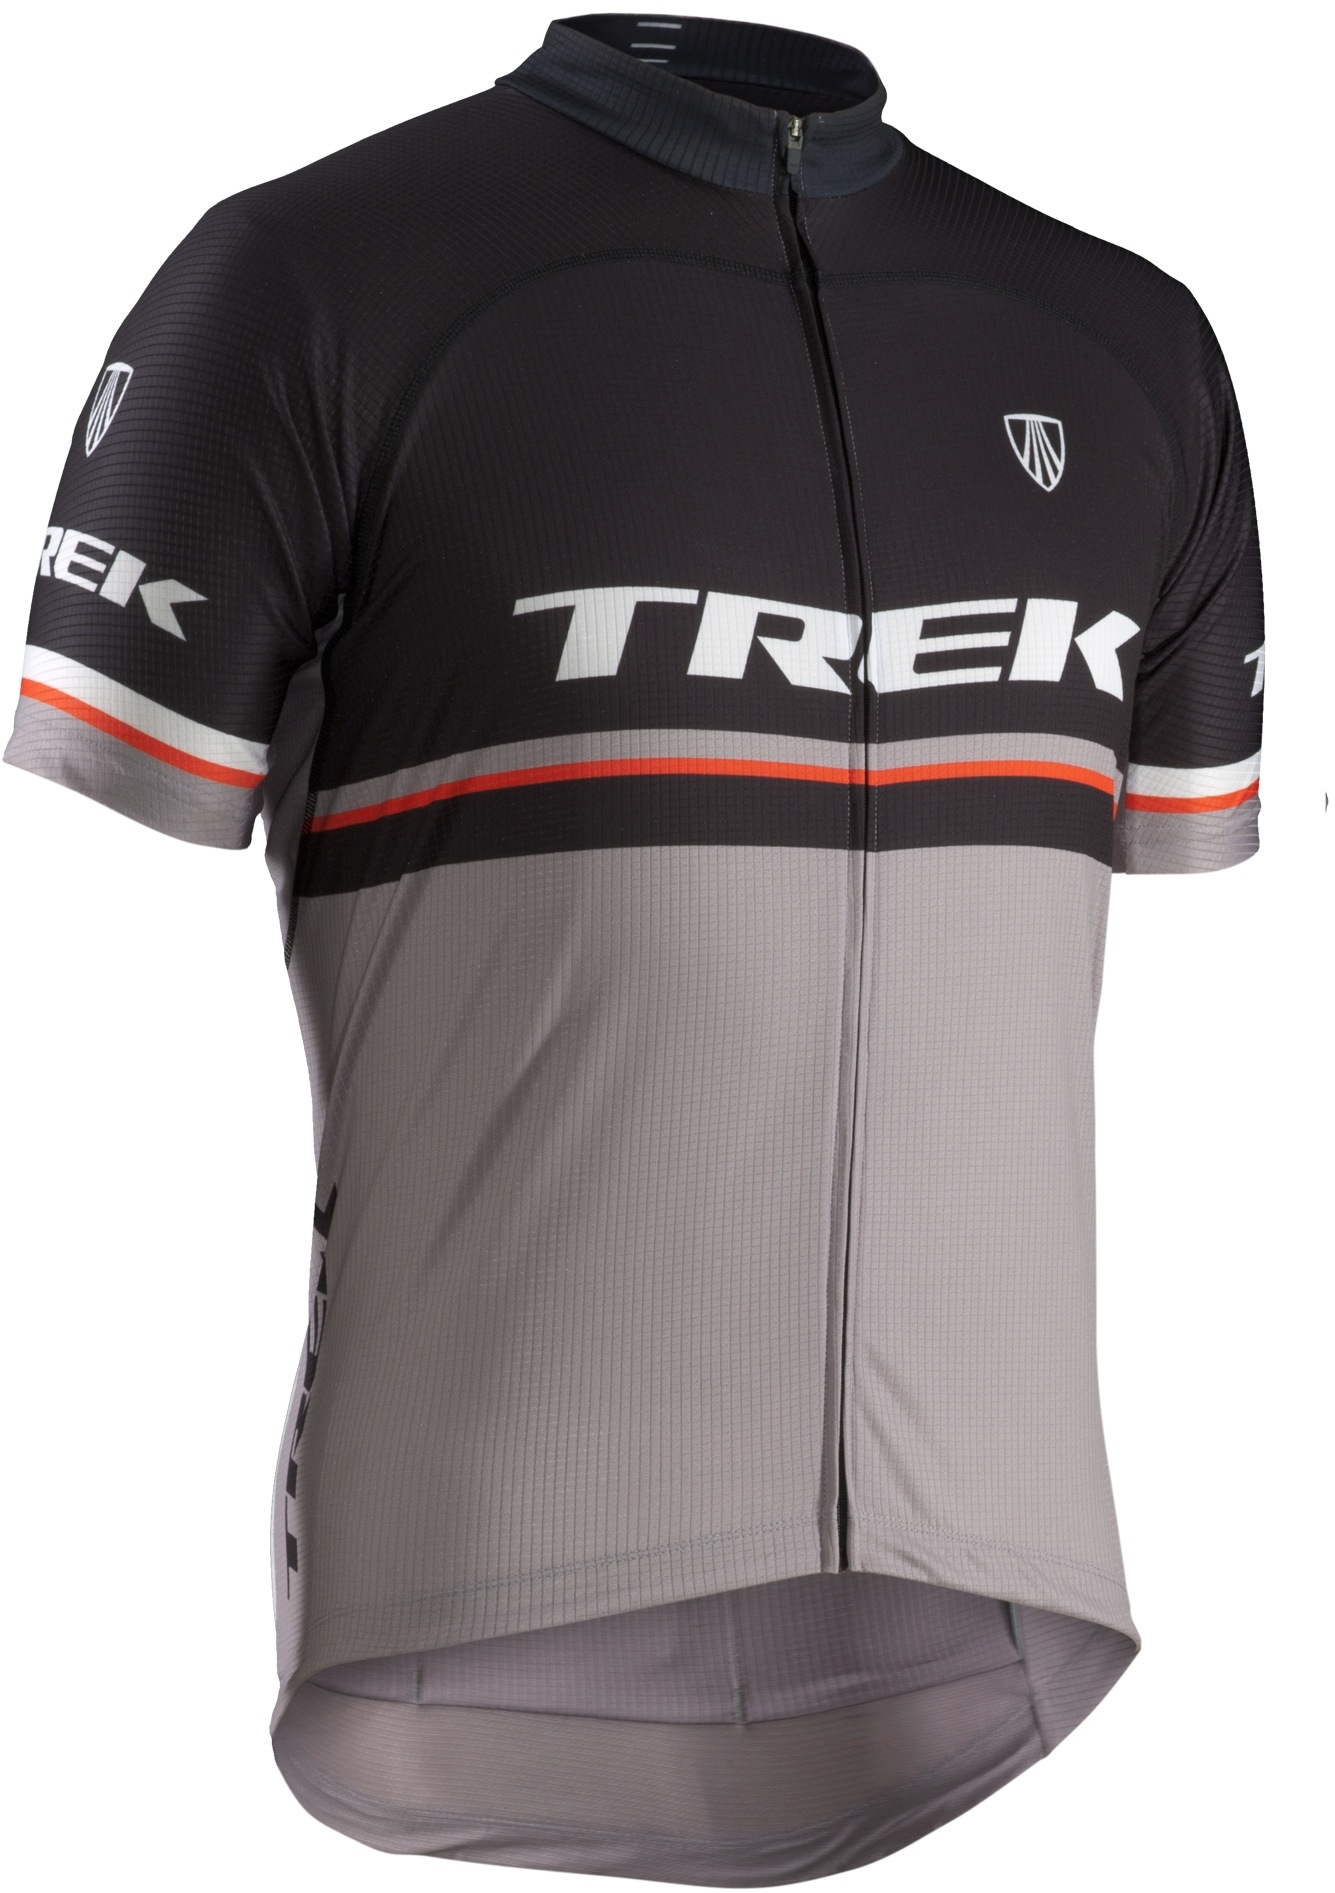 68147e05f Bontrager Trek Co-op Jersey - Short Sleeve - Jerseys - Clothing ...